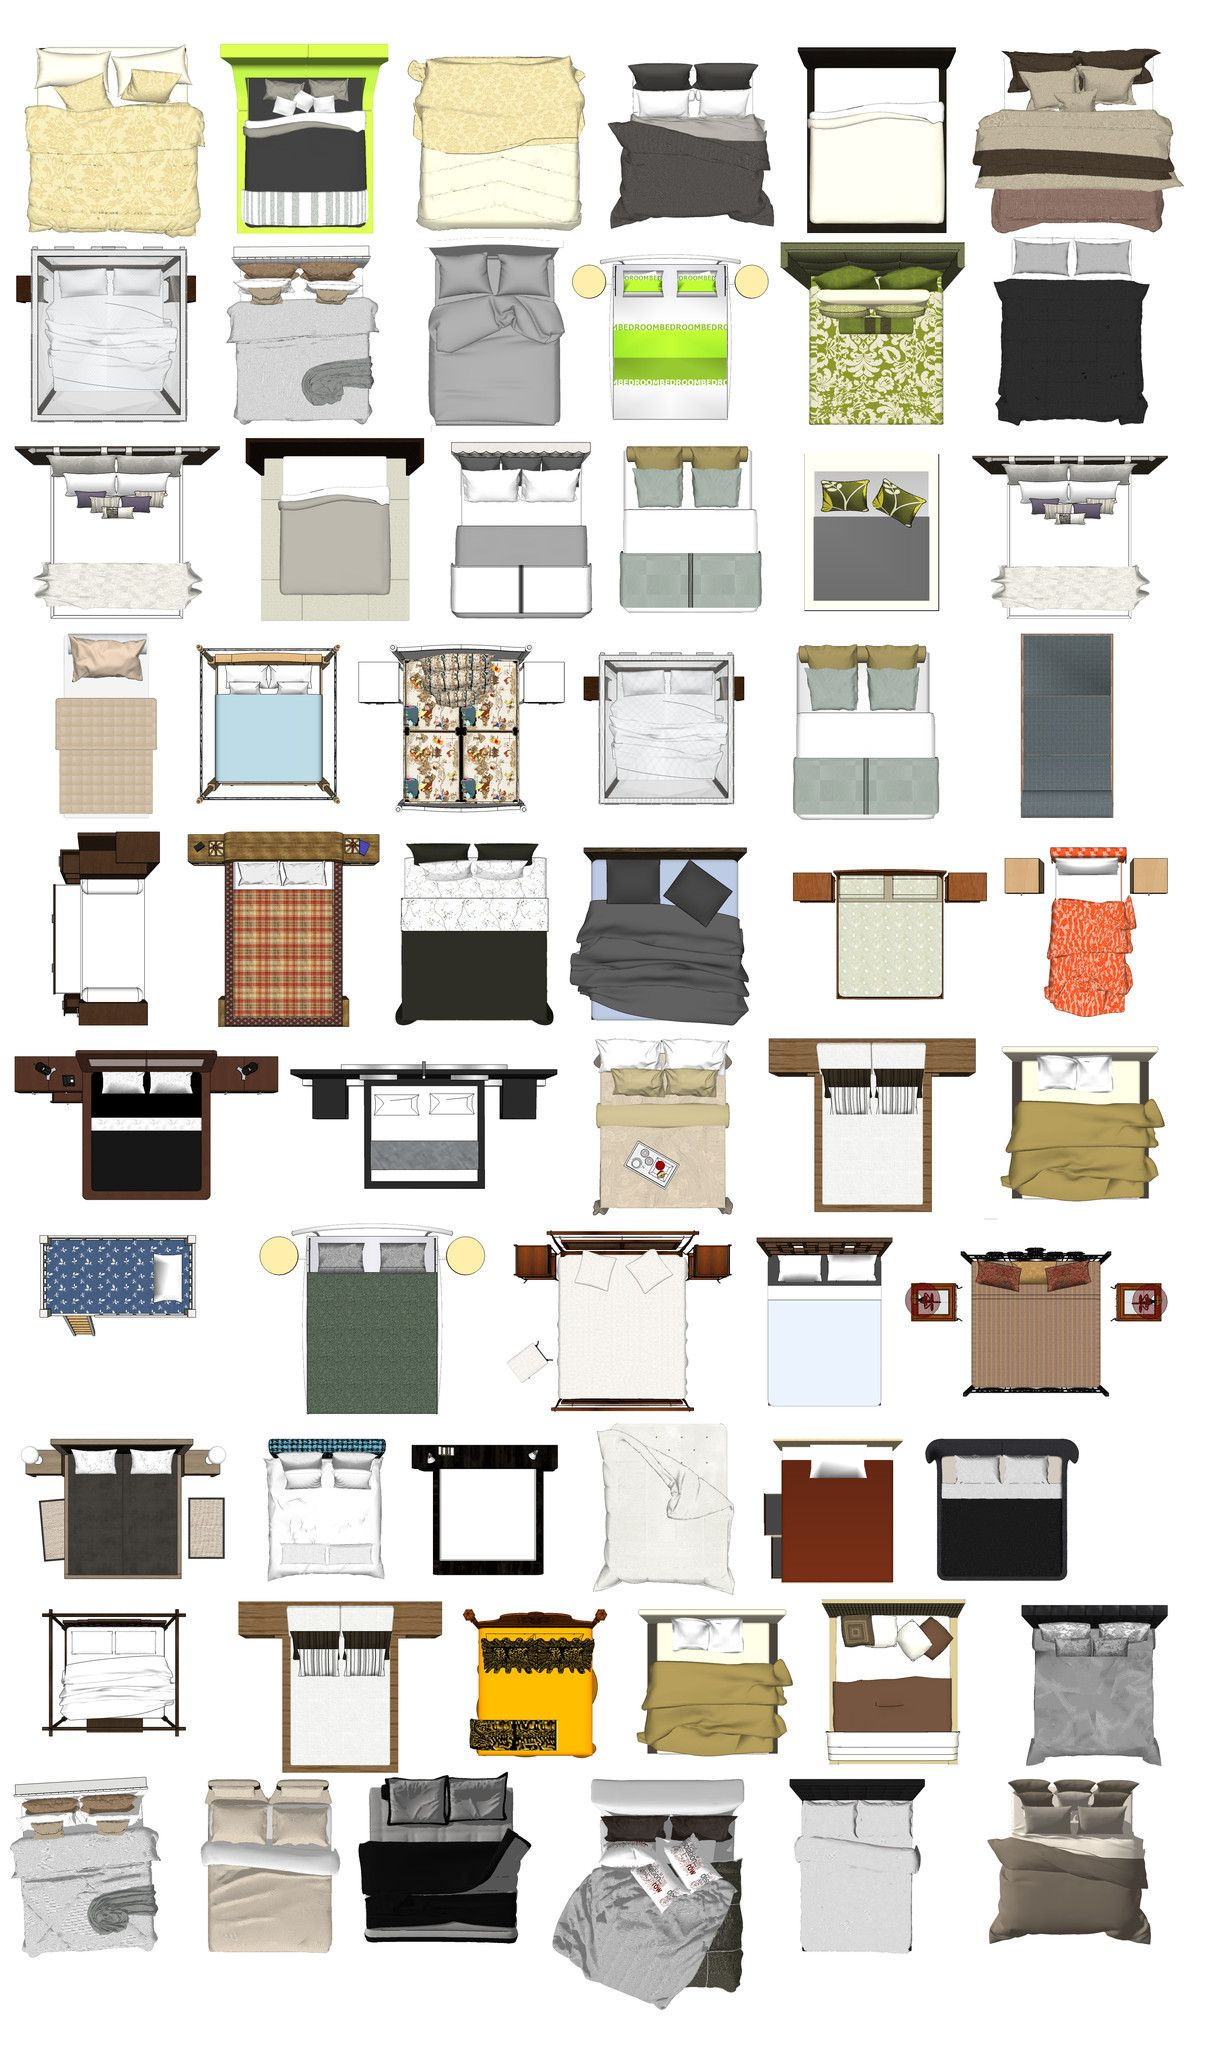 Photoshop psd bed blocks 1 photoshop software file for Furniture planning tool free